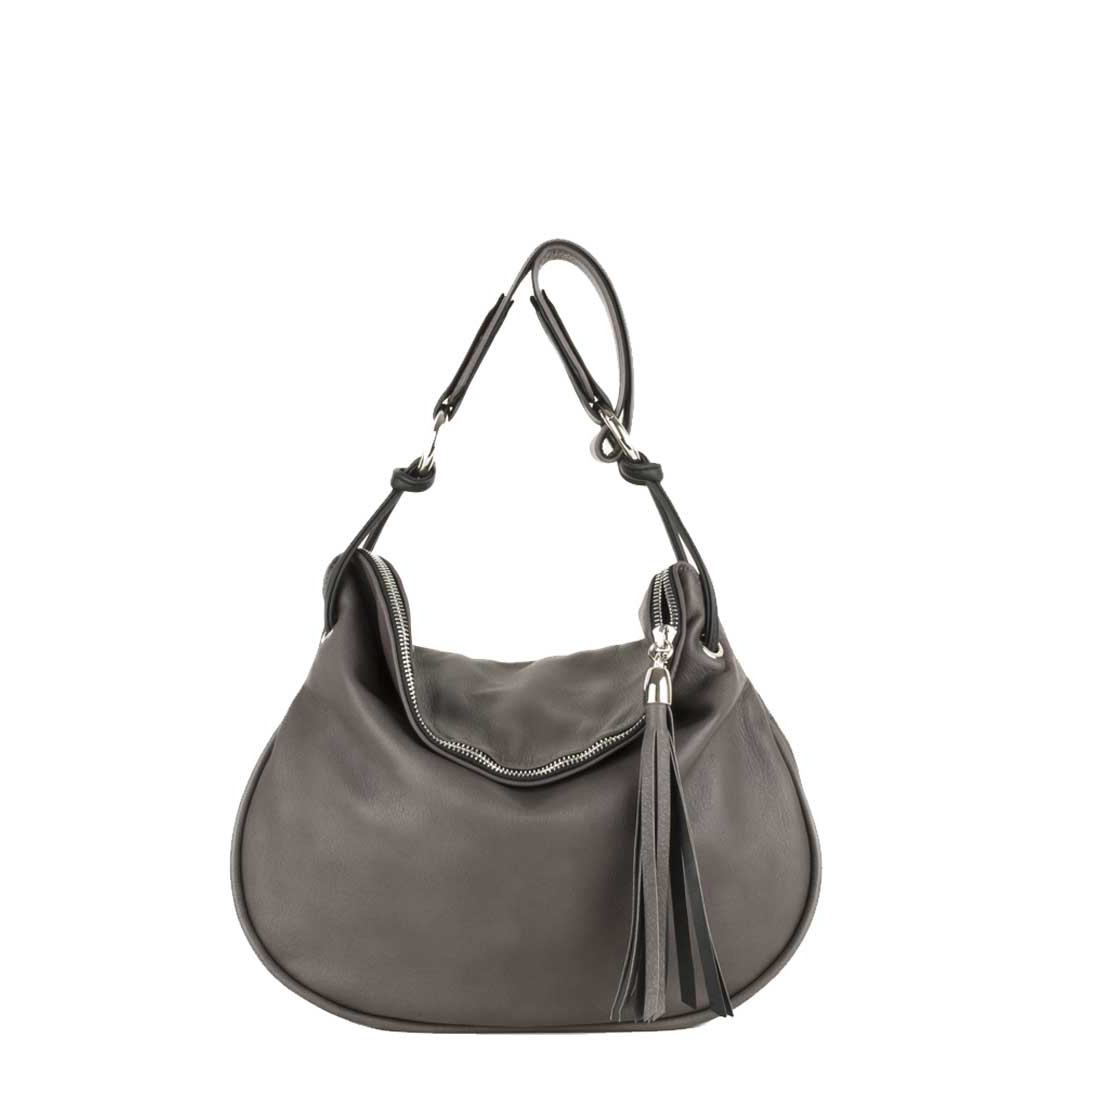 Milly Grigio Leather Shoulder Bag